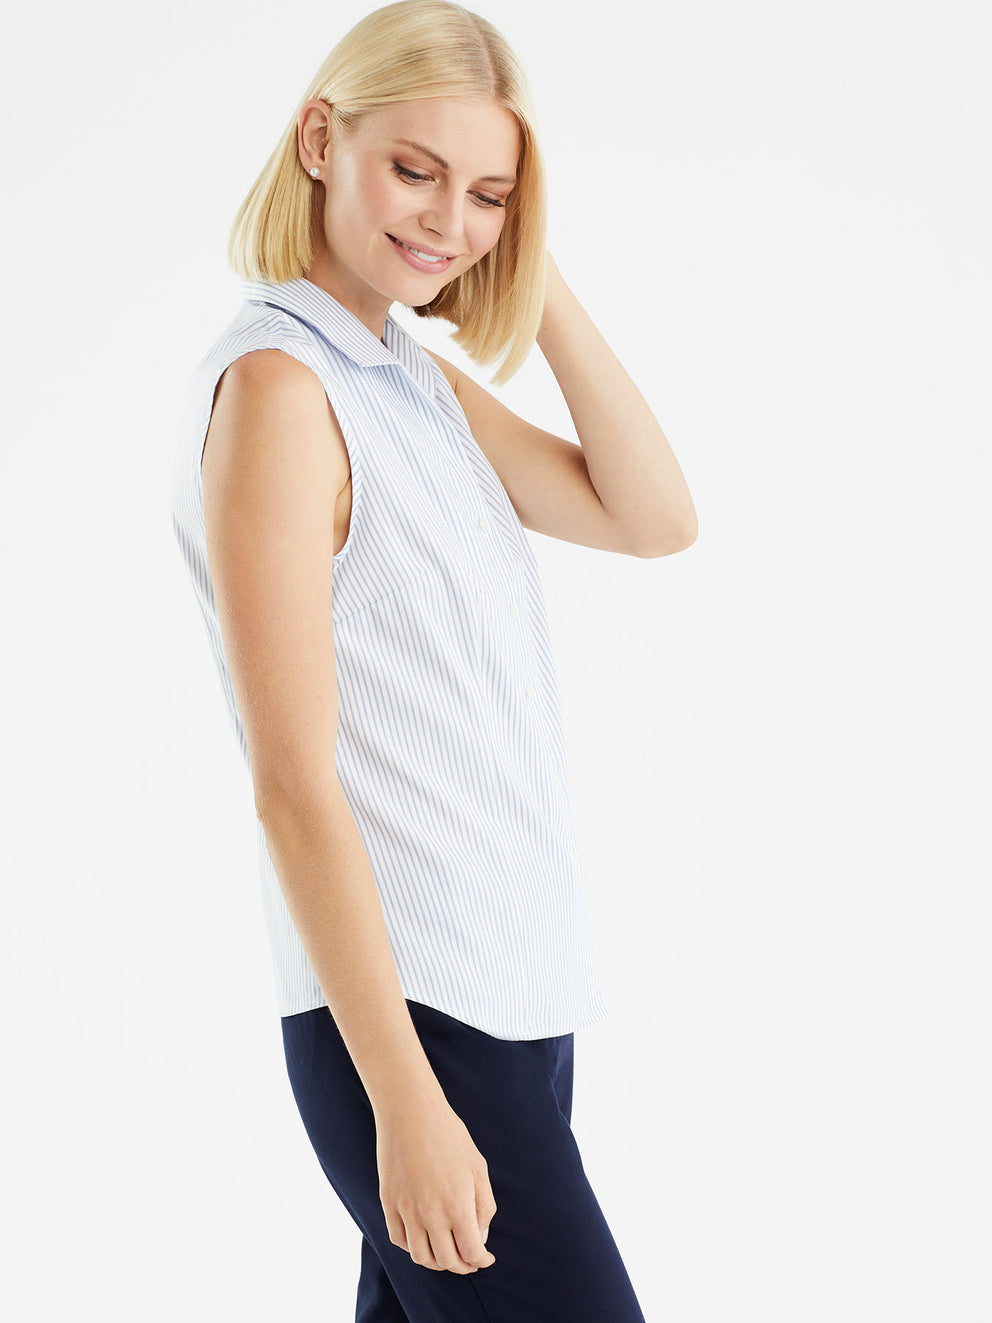 The Jones New York Non-Iron Sleeveless Shirt in color Classic Striped Blue - Image Position 2